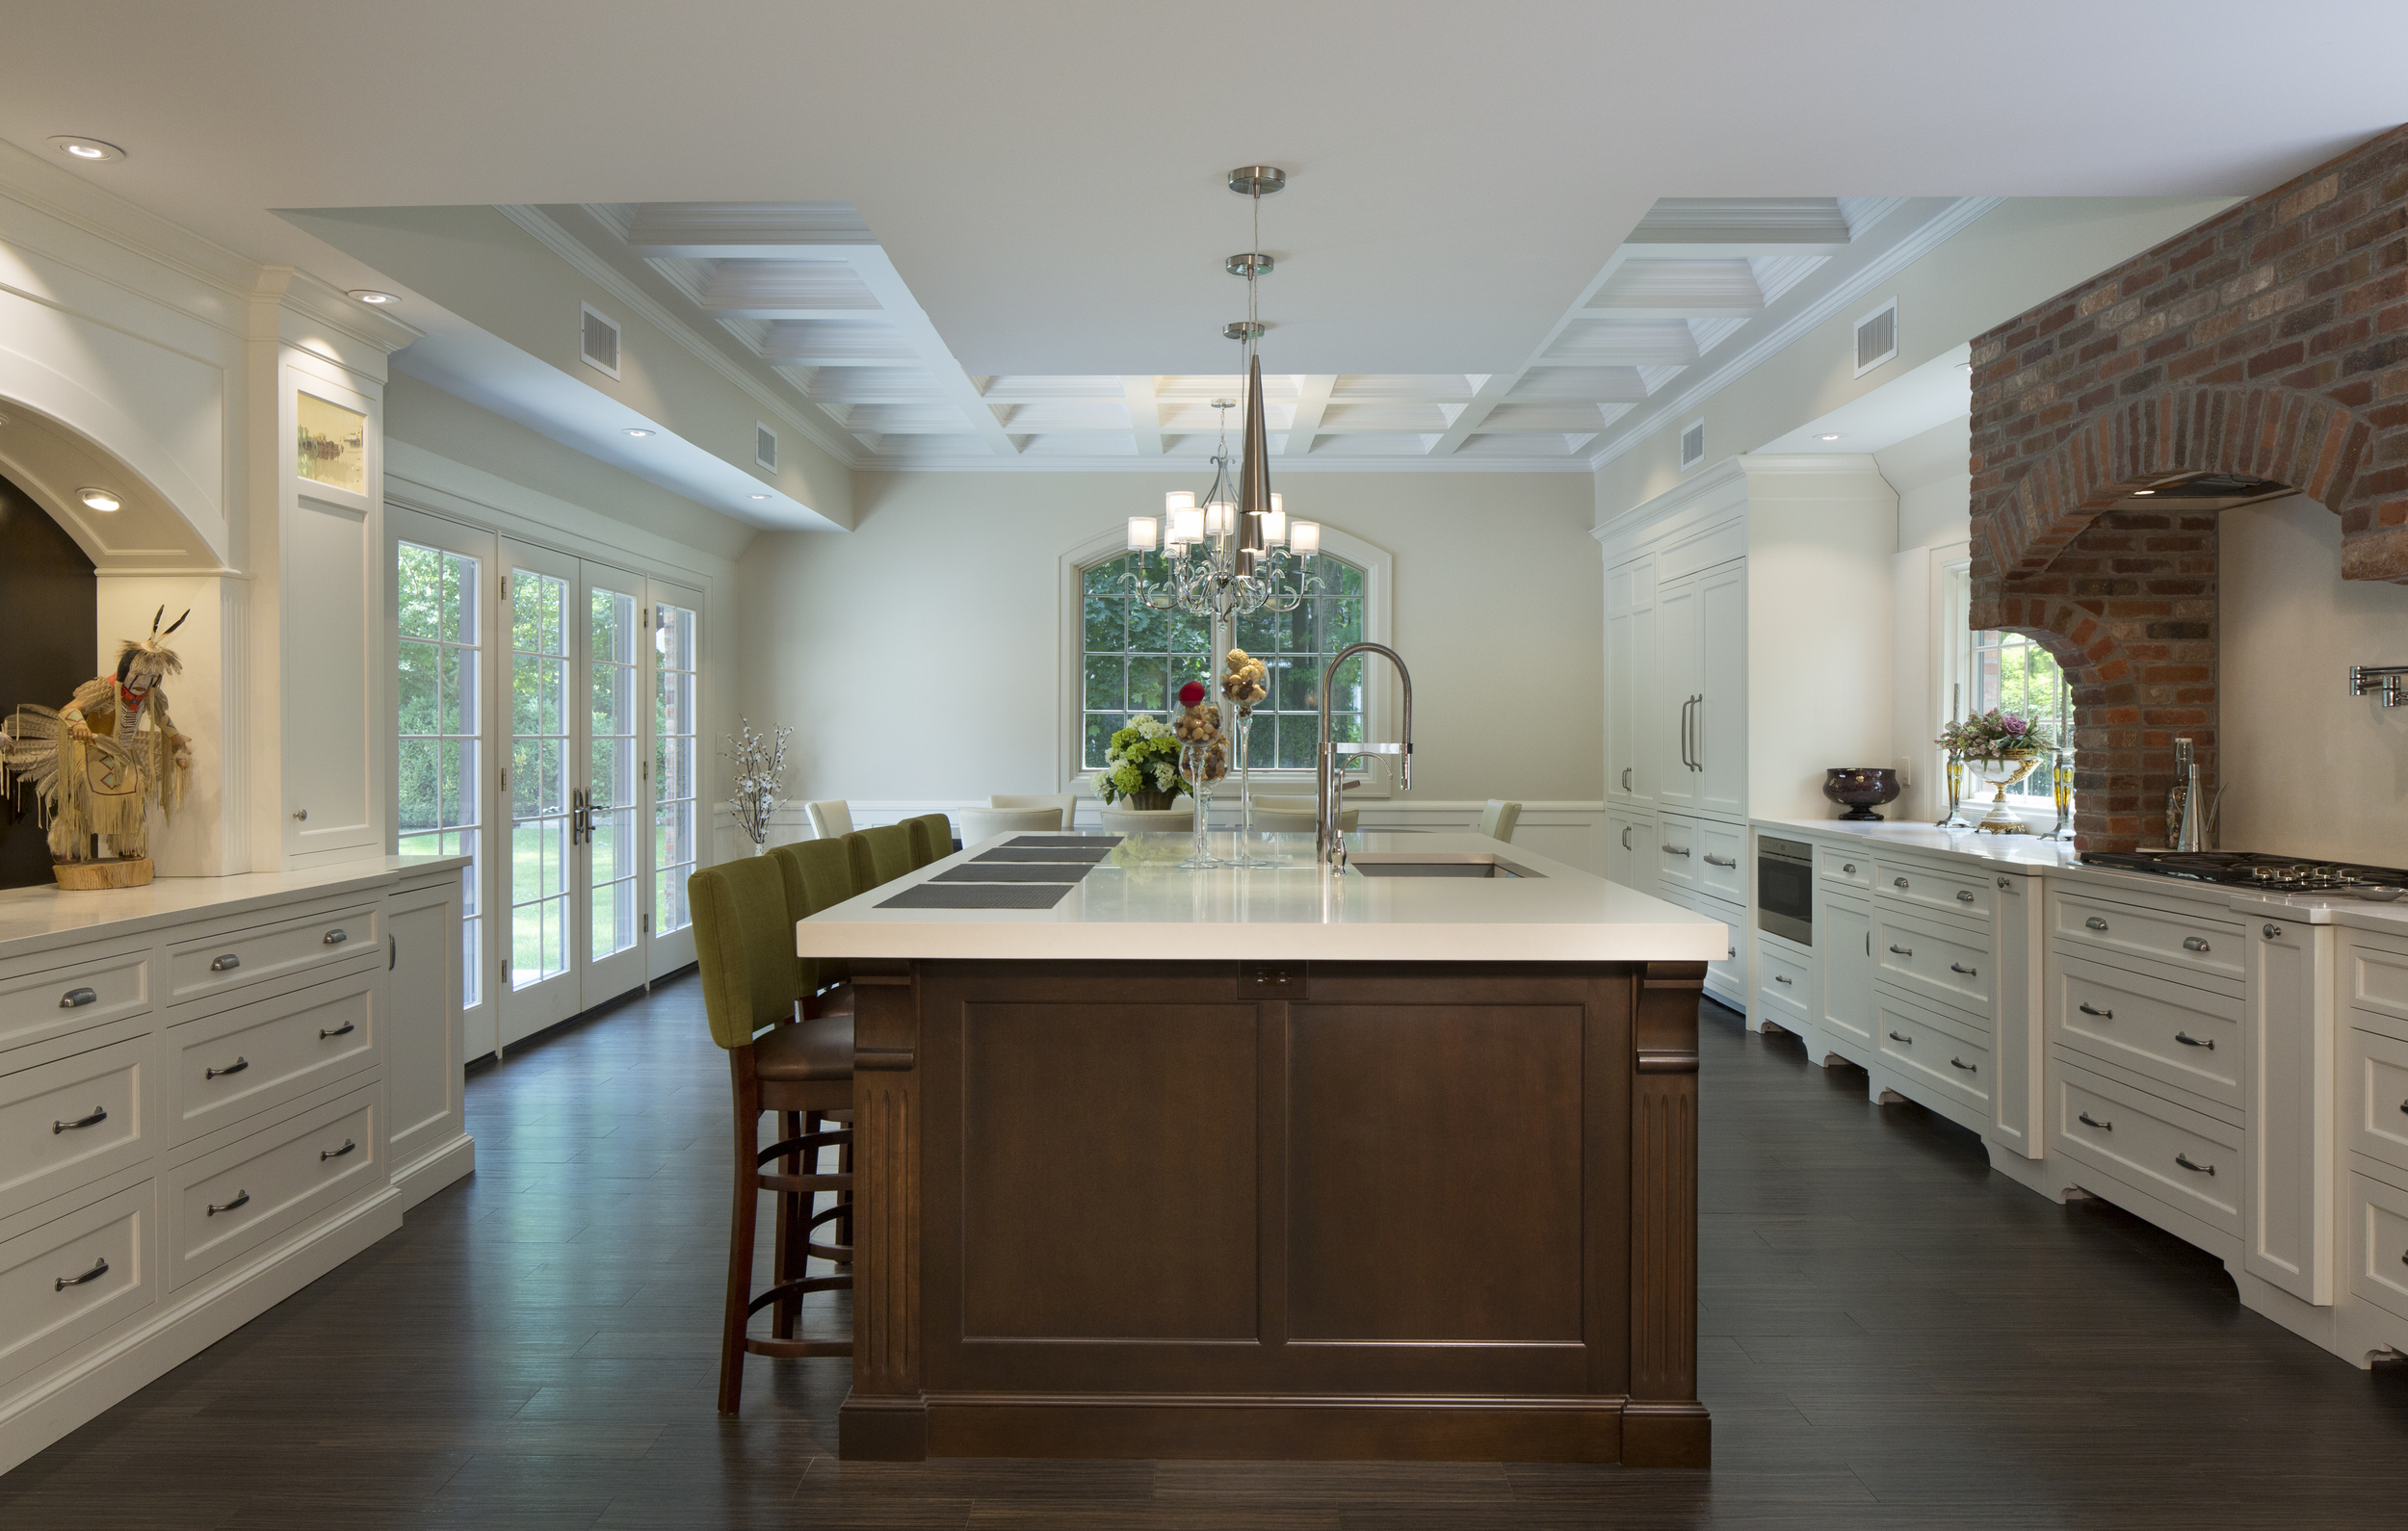 """Elite is a """"One Stop Shop"""" for kitchen & bath design and all home renovations. Call us at 516-365-0595 with any questions you may have. Or feel free to stop by our showroom at 983 Northern Blvd Manhasset, NY 11030."""